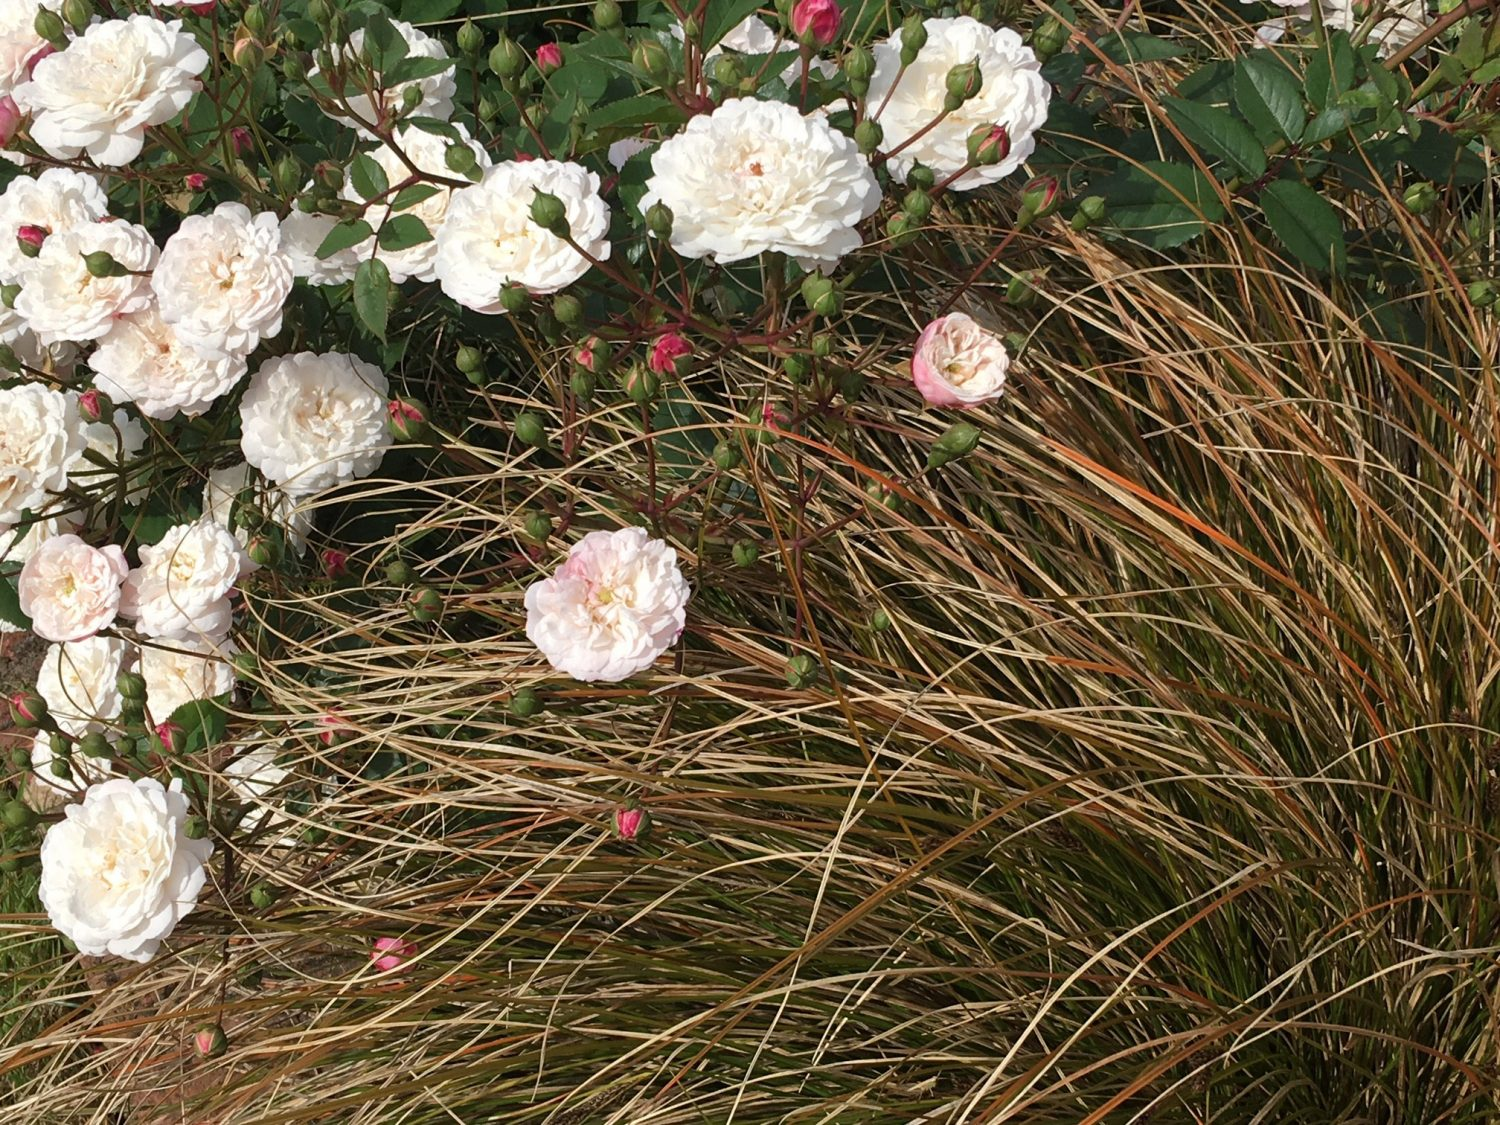 Grasses can provide a simple backdrop for flowers